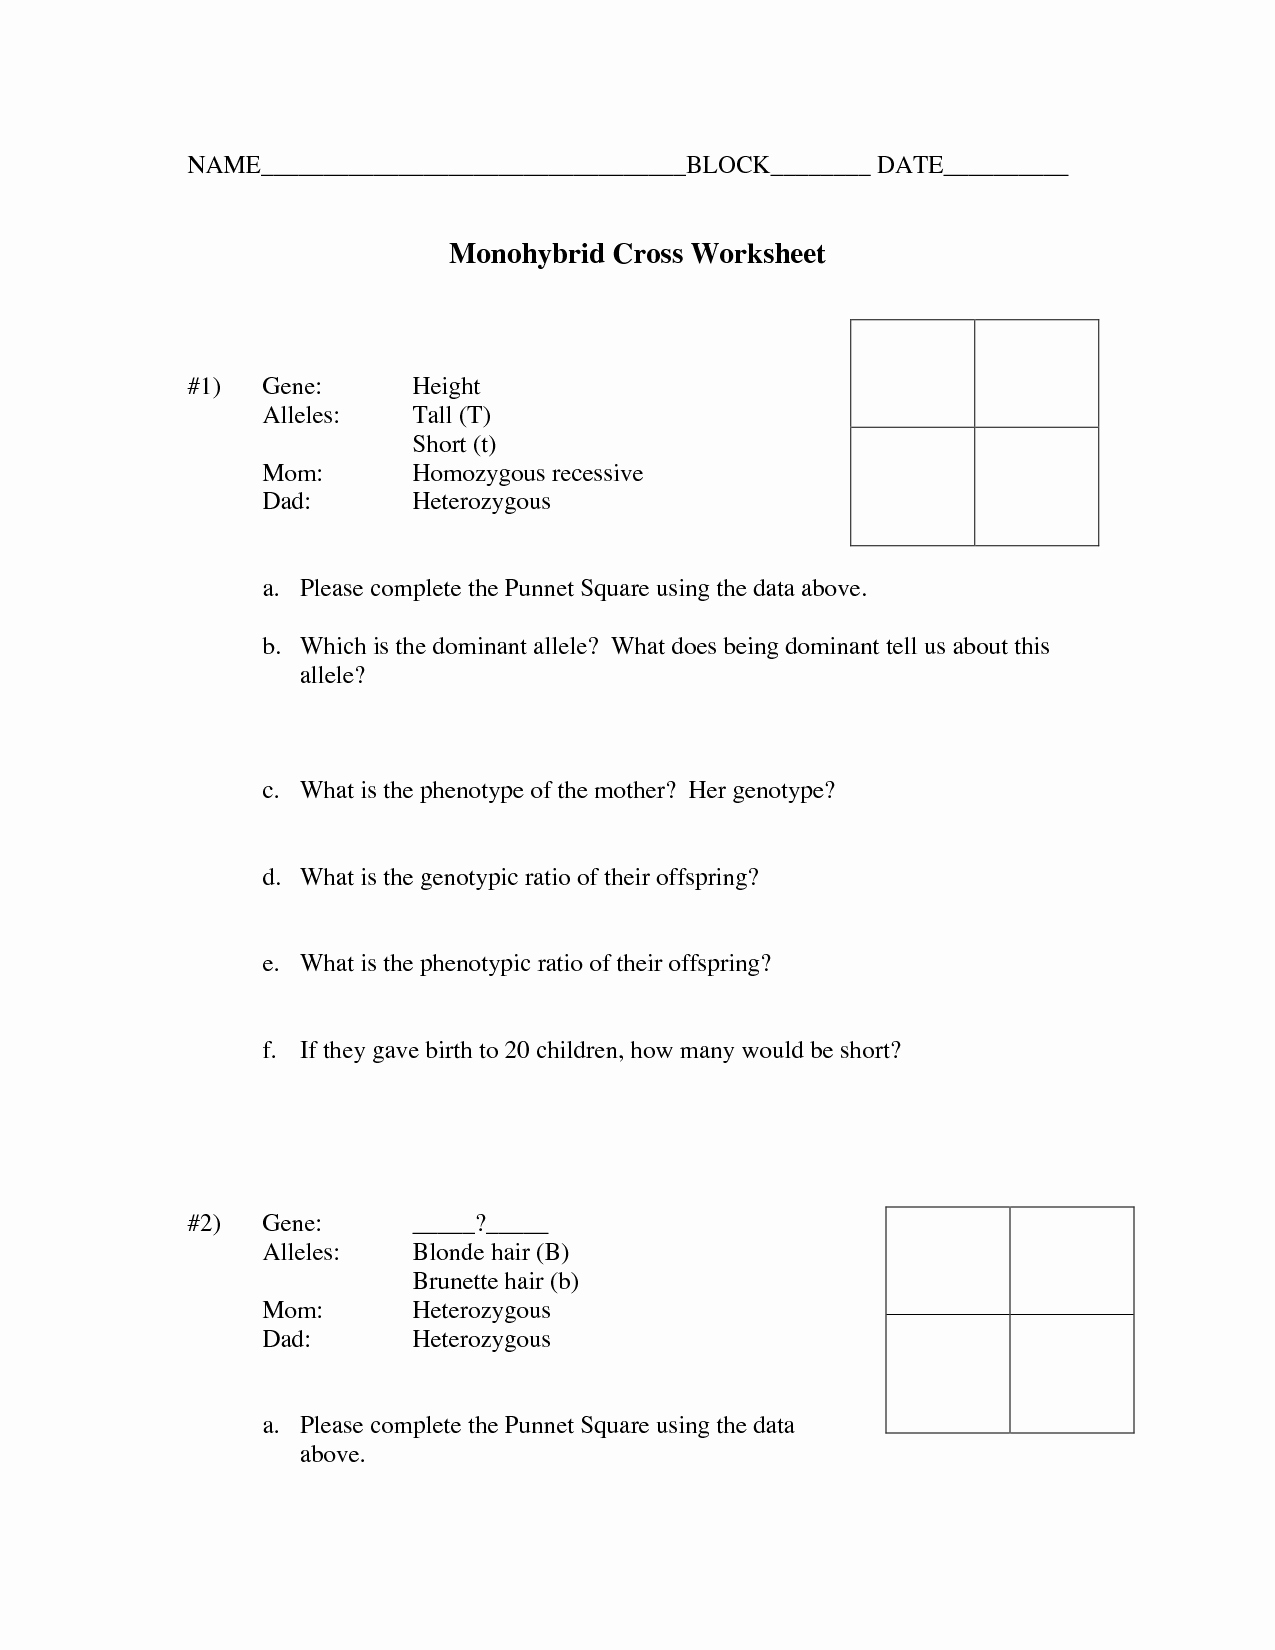 Dihybrid Cross Worksheet Answers Unique 15 Best Of Dihybrid Cross Worksheet Answers